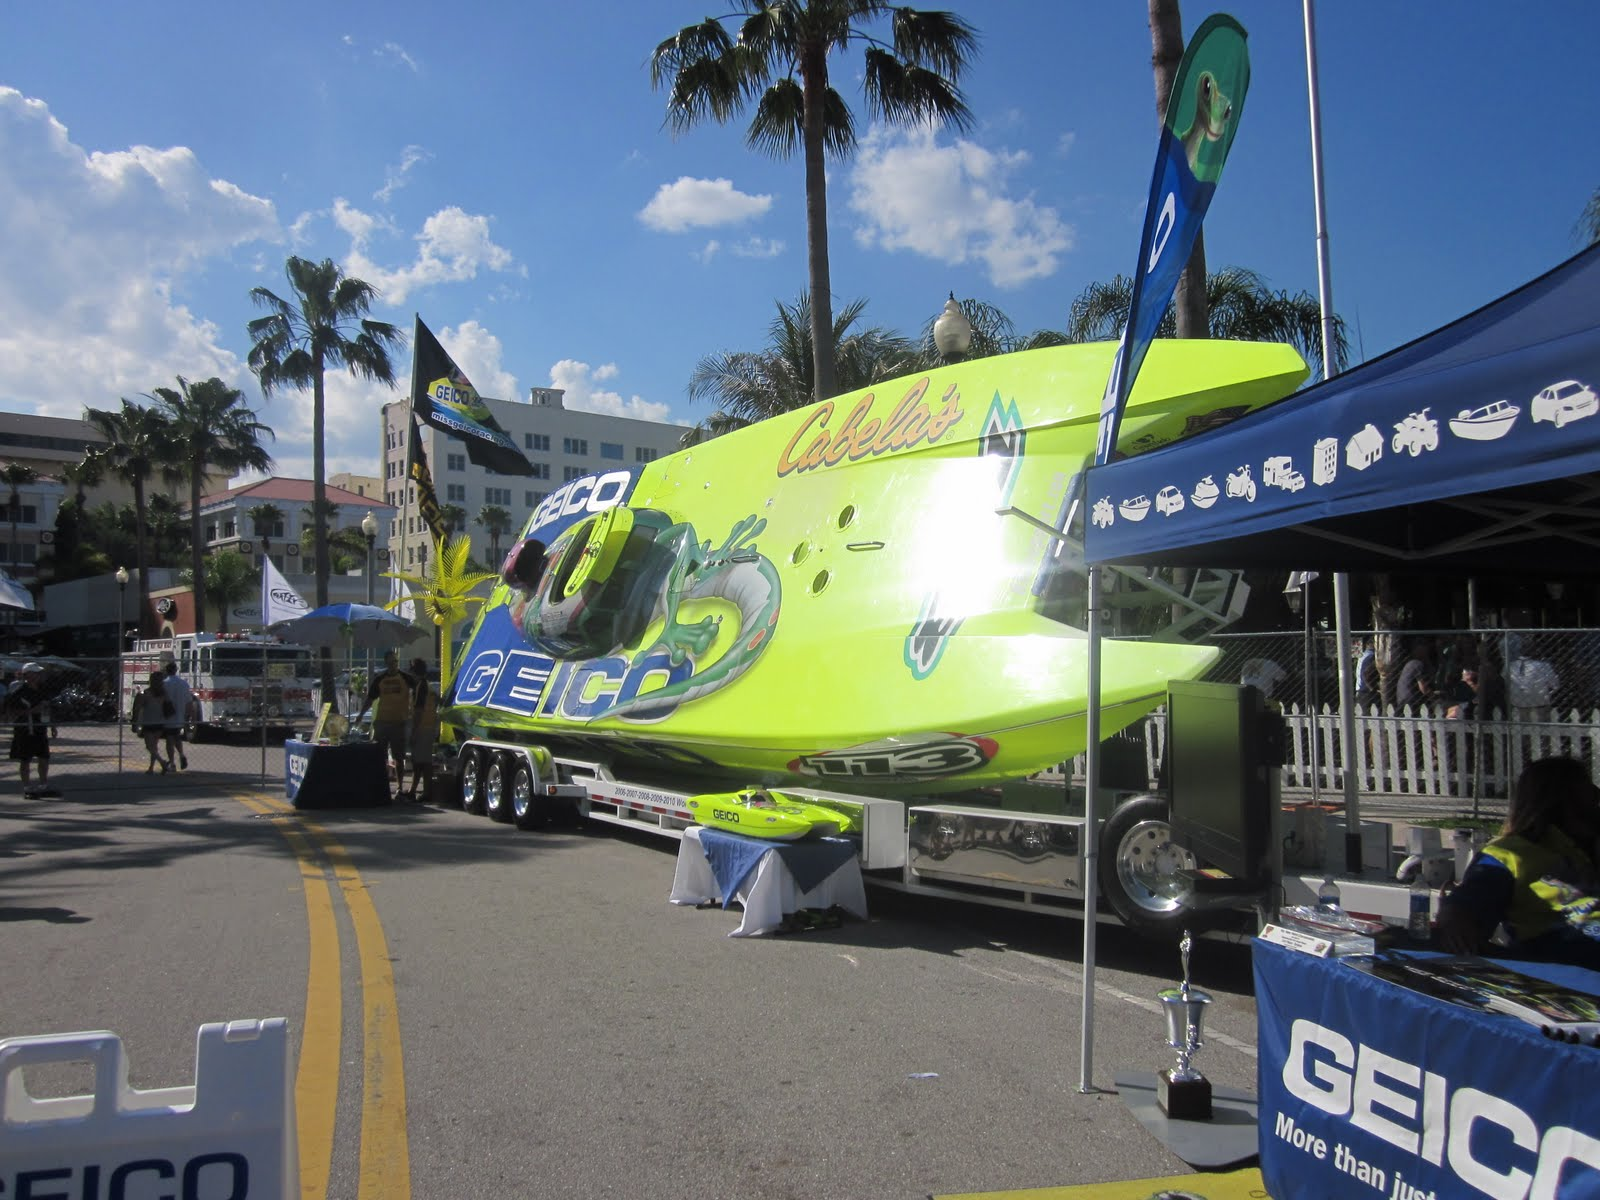 Geico Off-shore Racing Boat